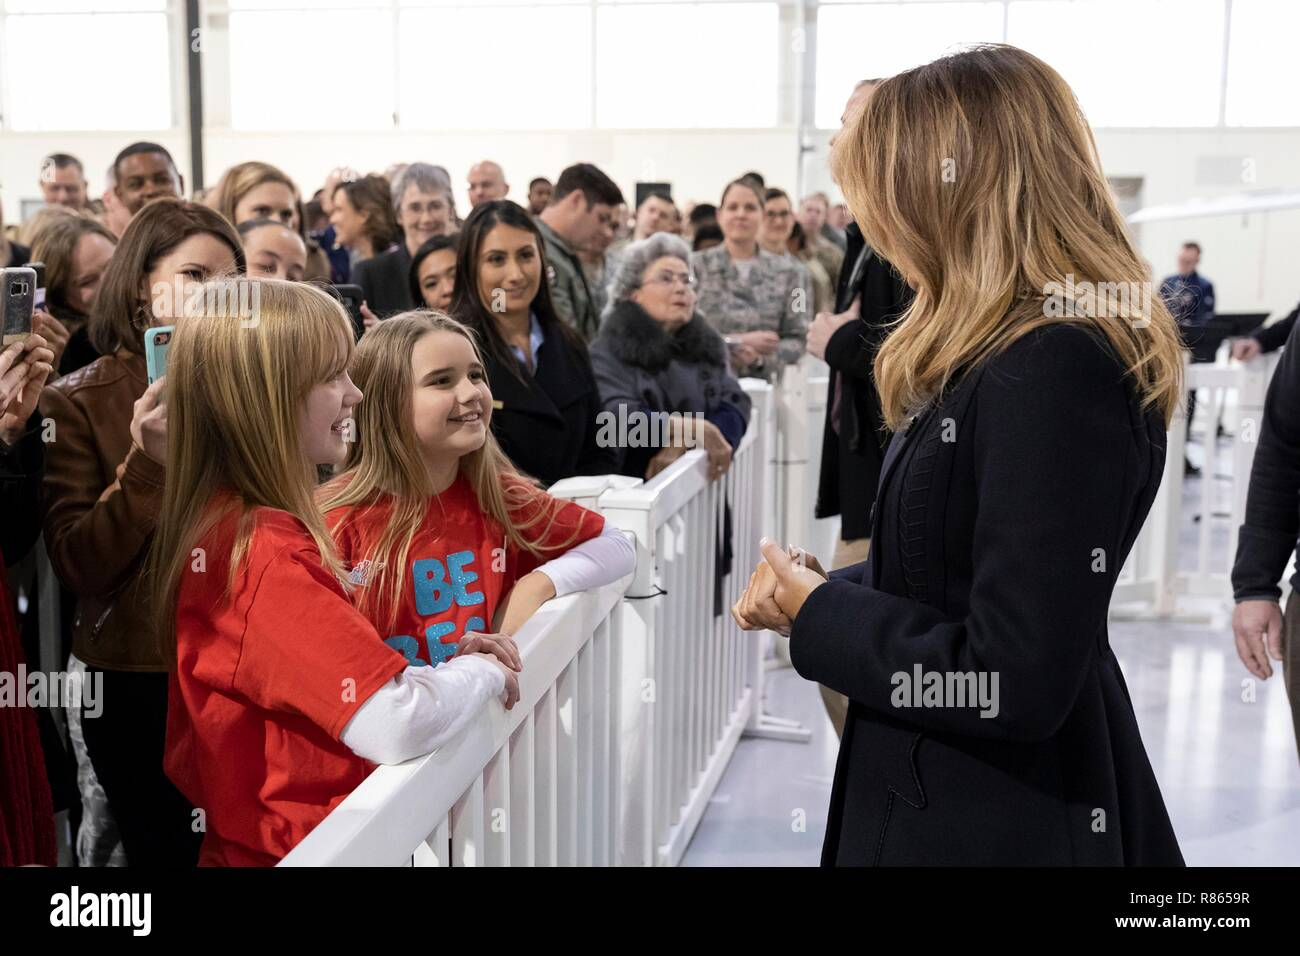 U.S. First Lady Melania Trump greets children of service members during a holiday visit to Hangar 789 at Langley Air Force Base December 12, 2018 in Hampton, Virginia. - Stock Image